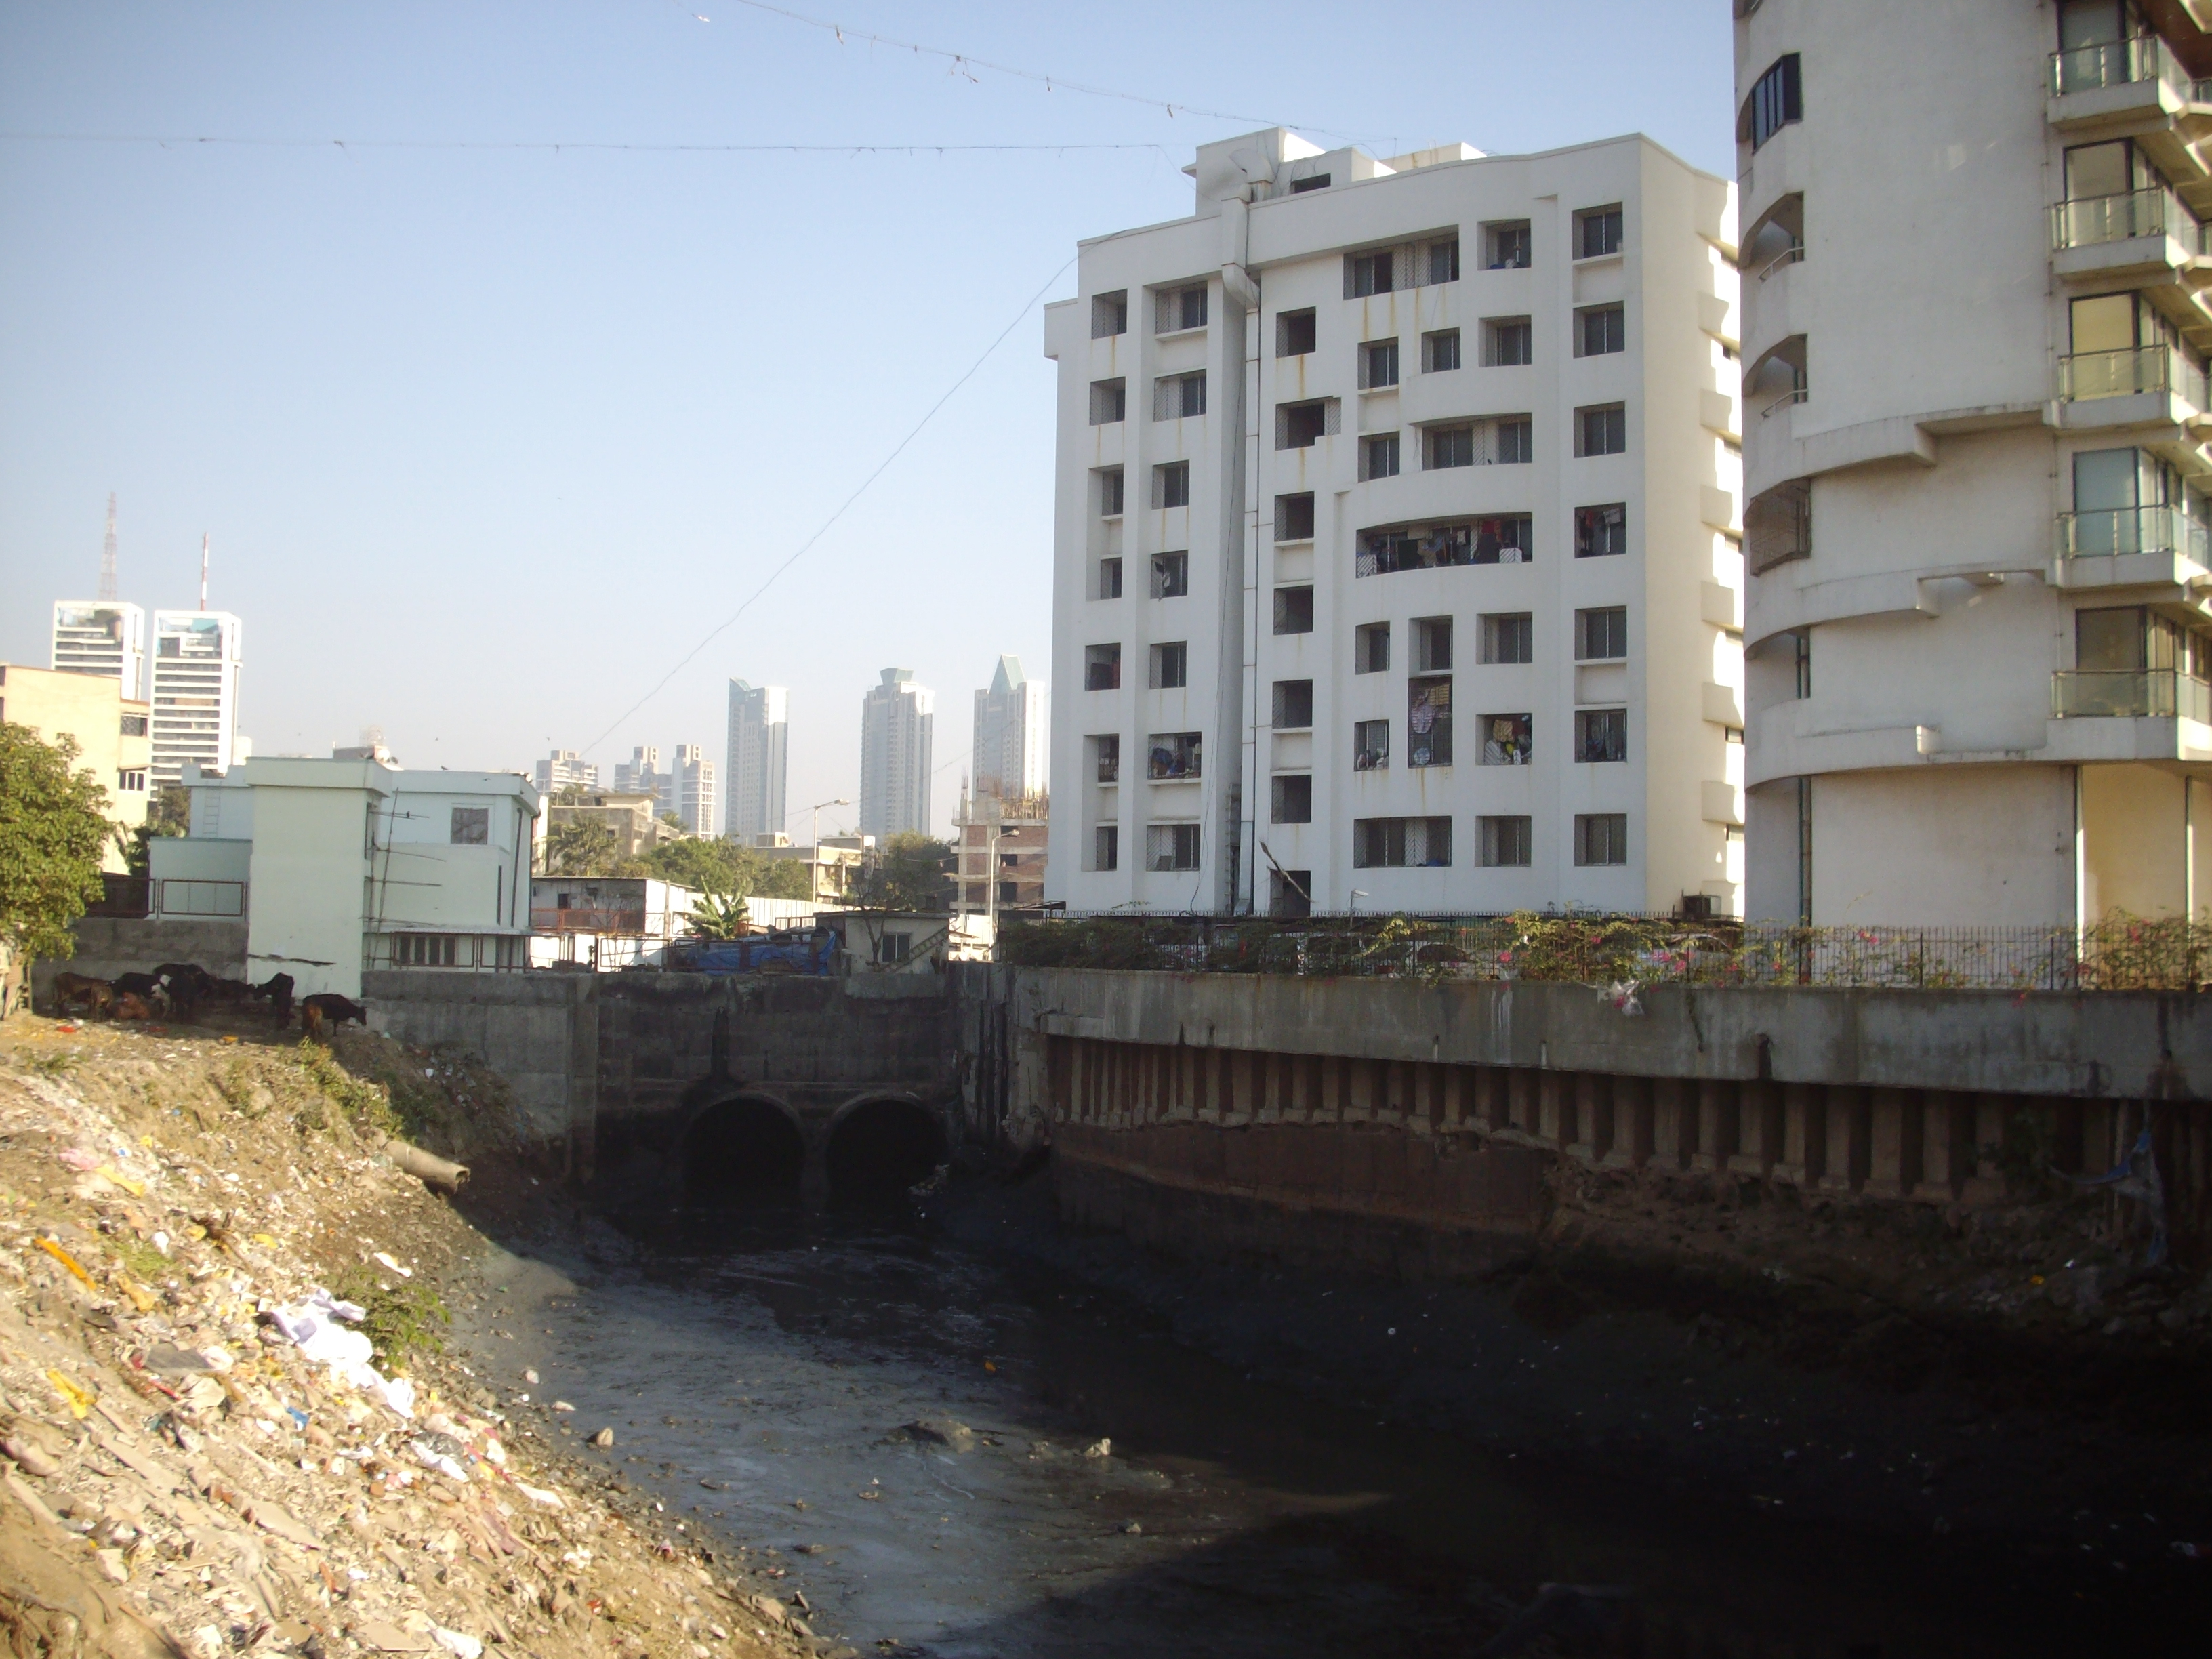 File Worli Gutter Of Mumbai City Jpg Wikimedia Commons